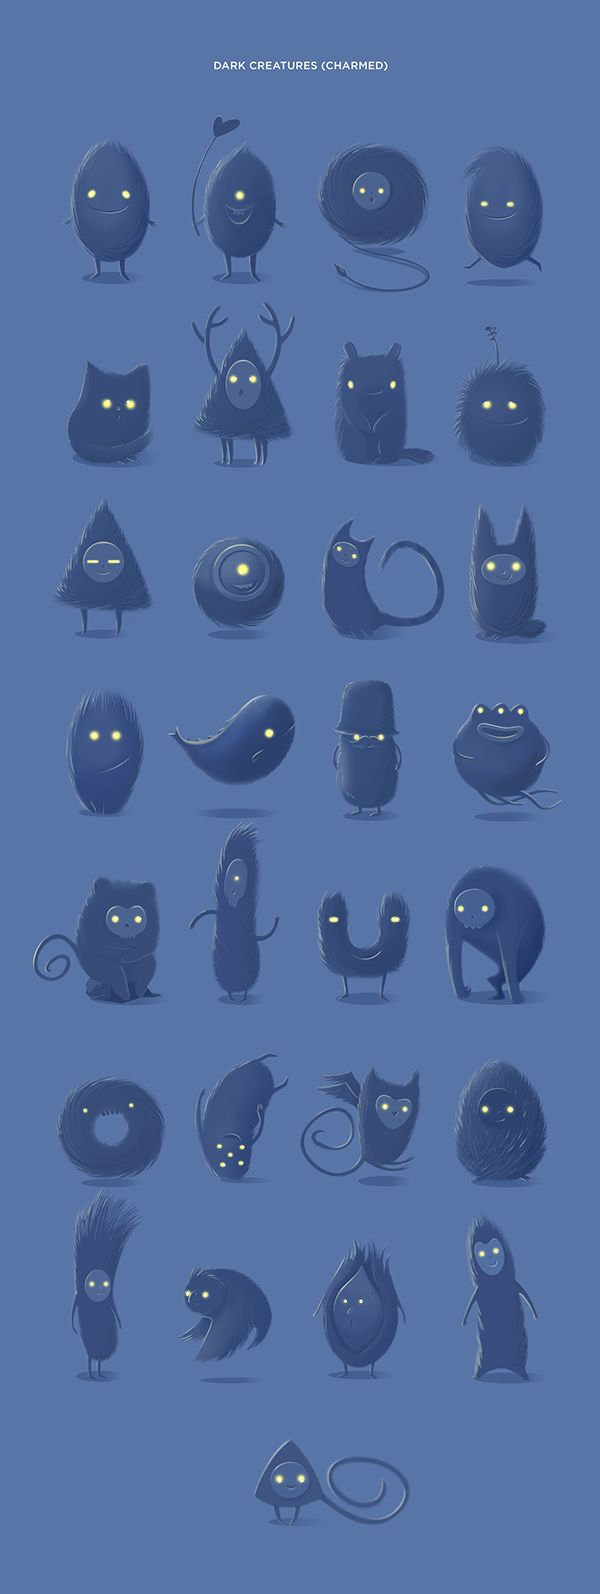 Illustrative characters